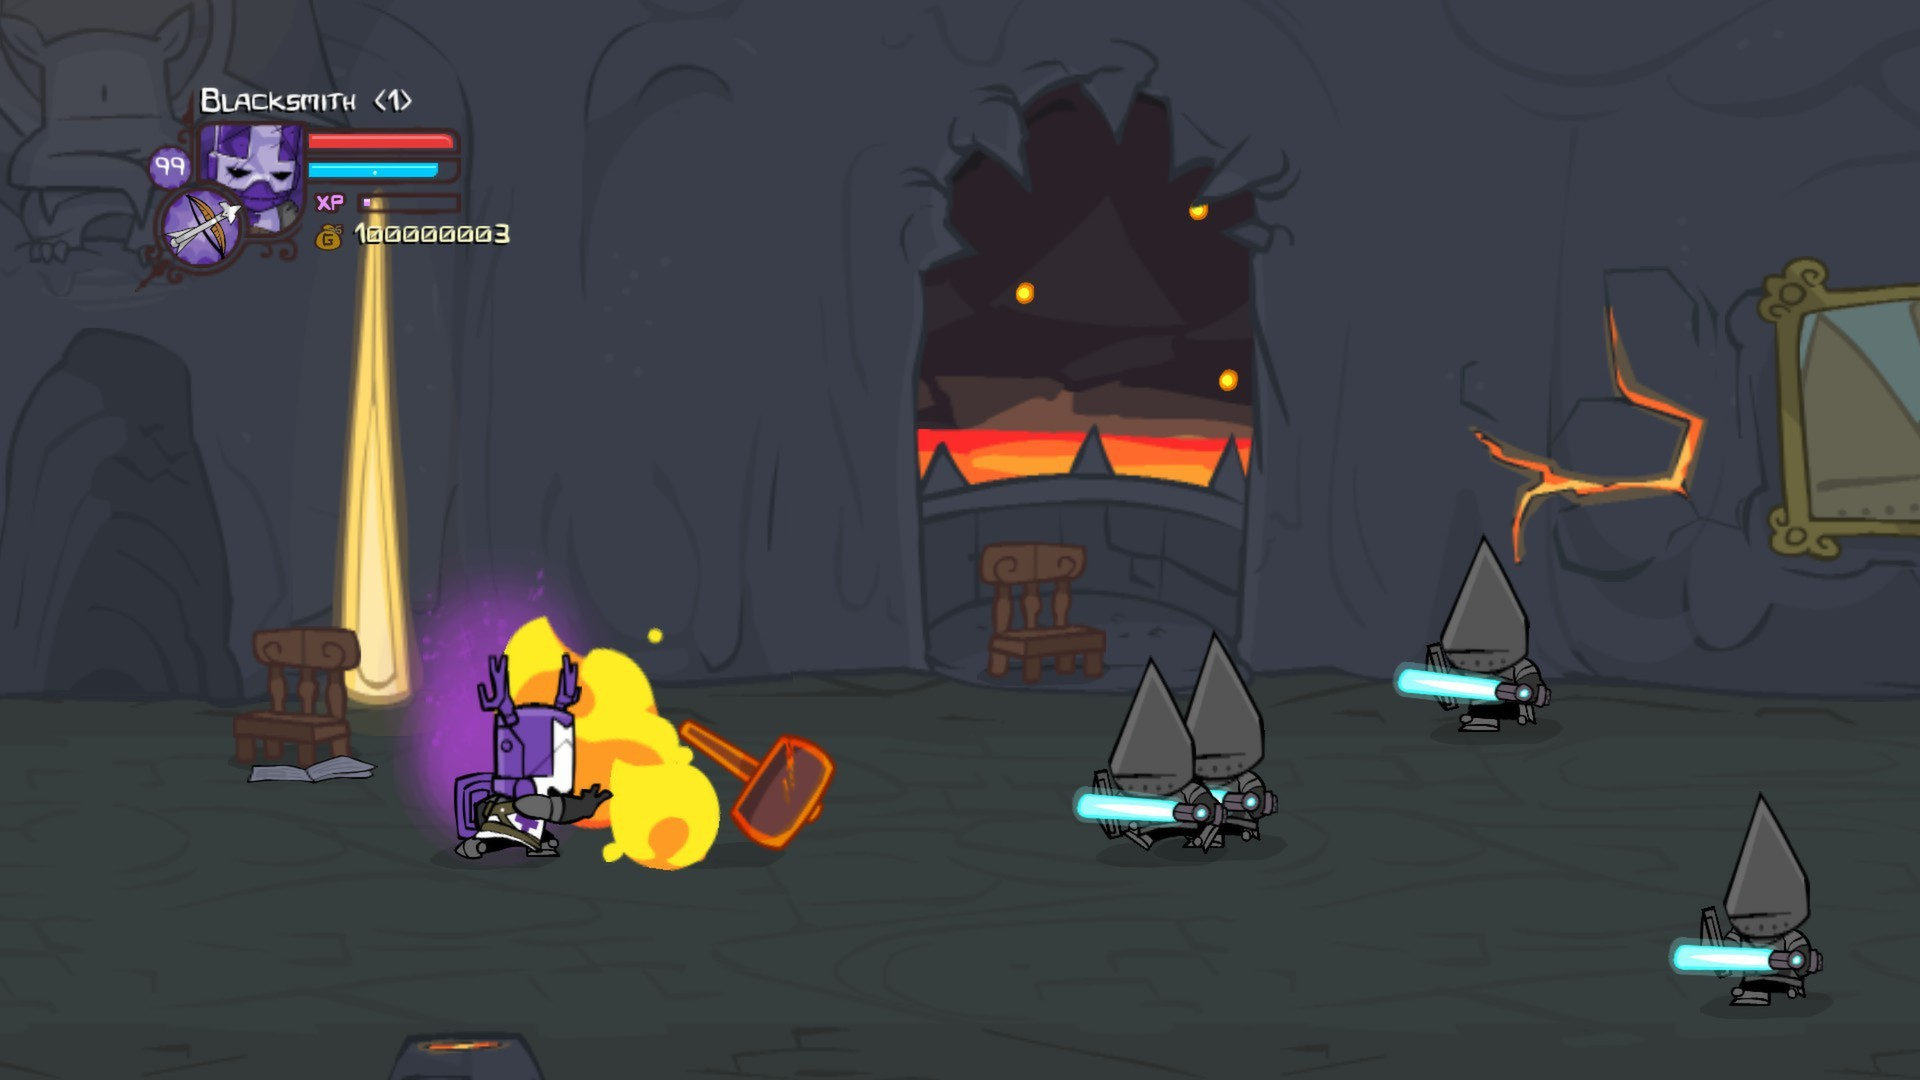 Castle Crashers - Blacksmith Pack